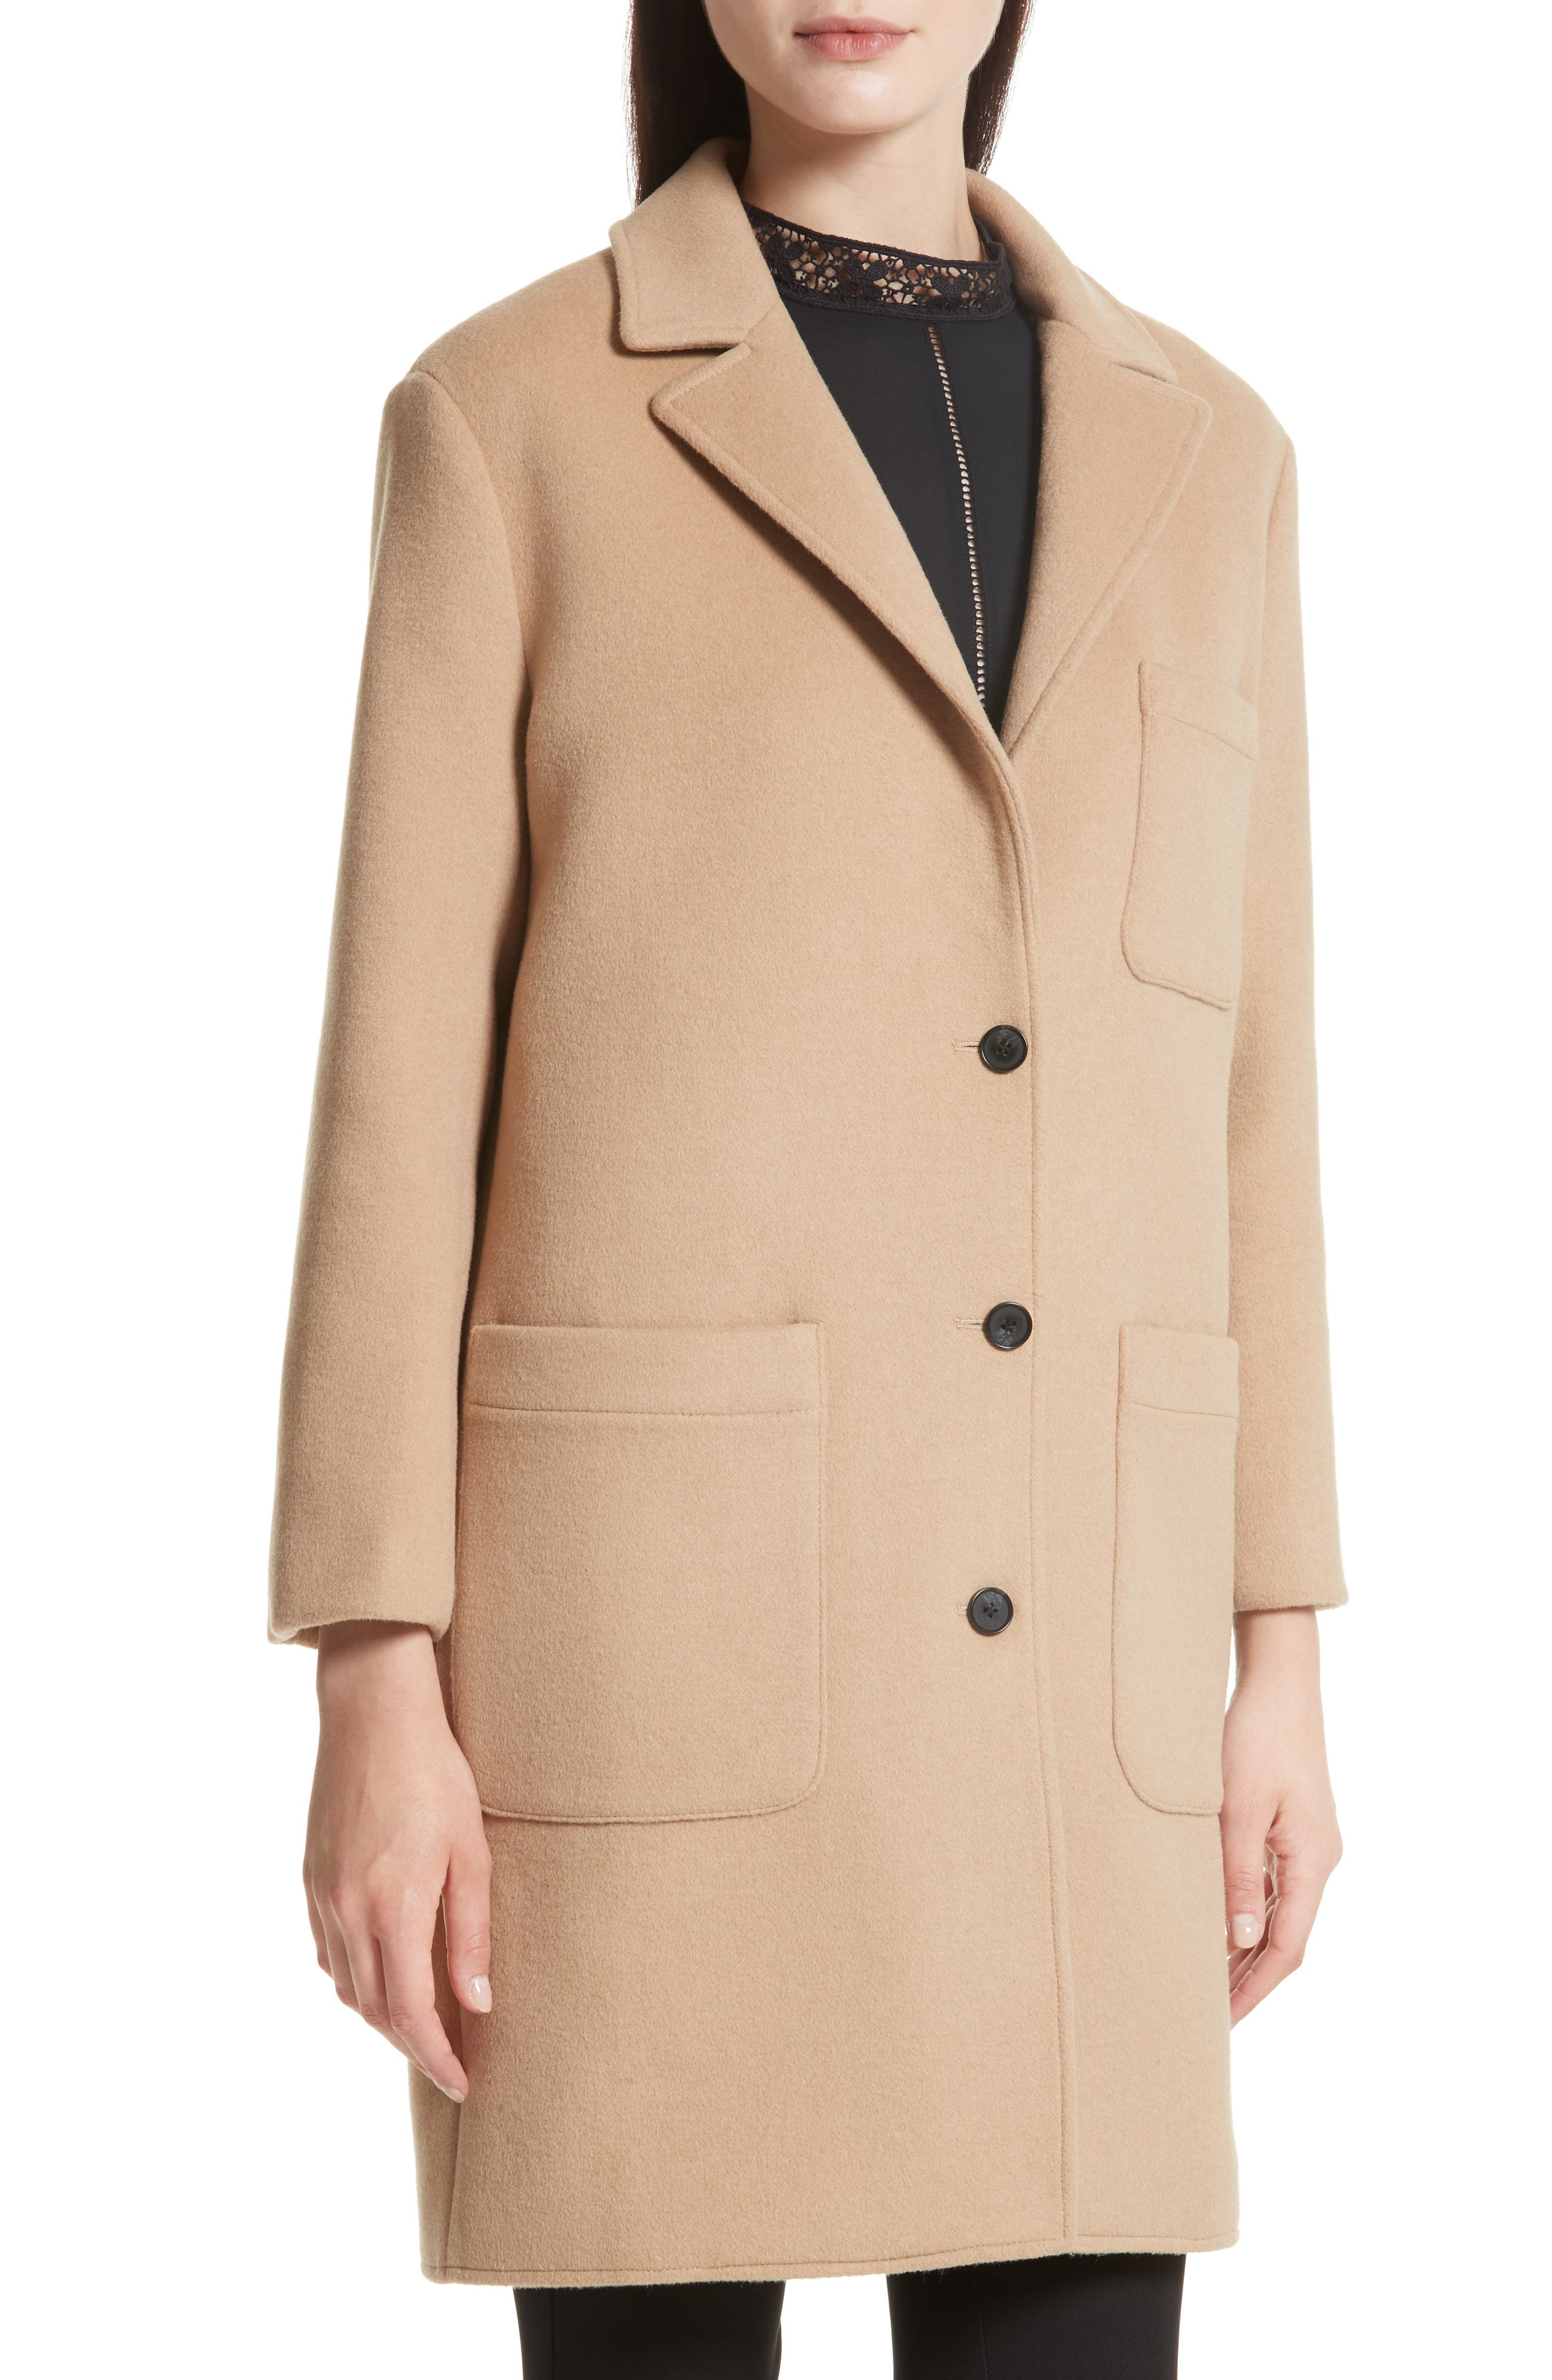 Allegra Wool Blend Coat,                             Alternate thumbnail 4, color,                             232